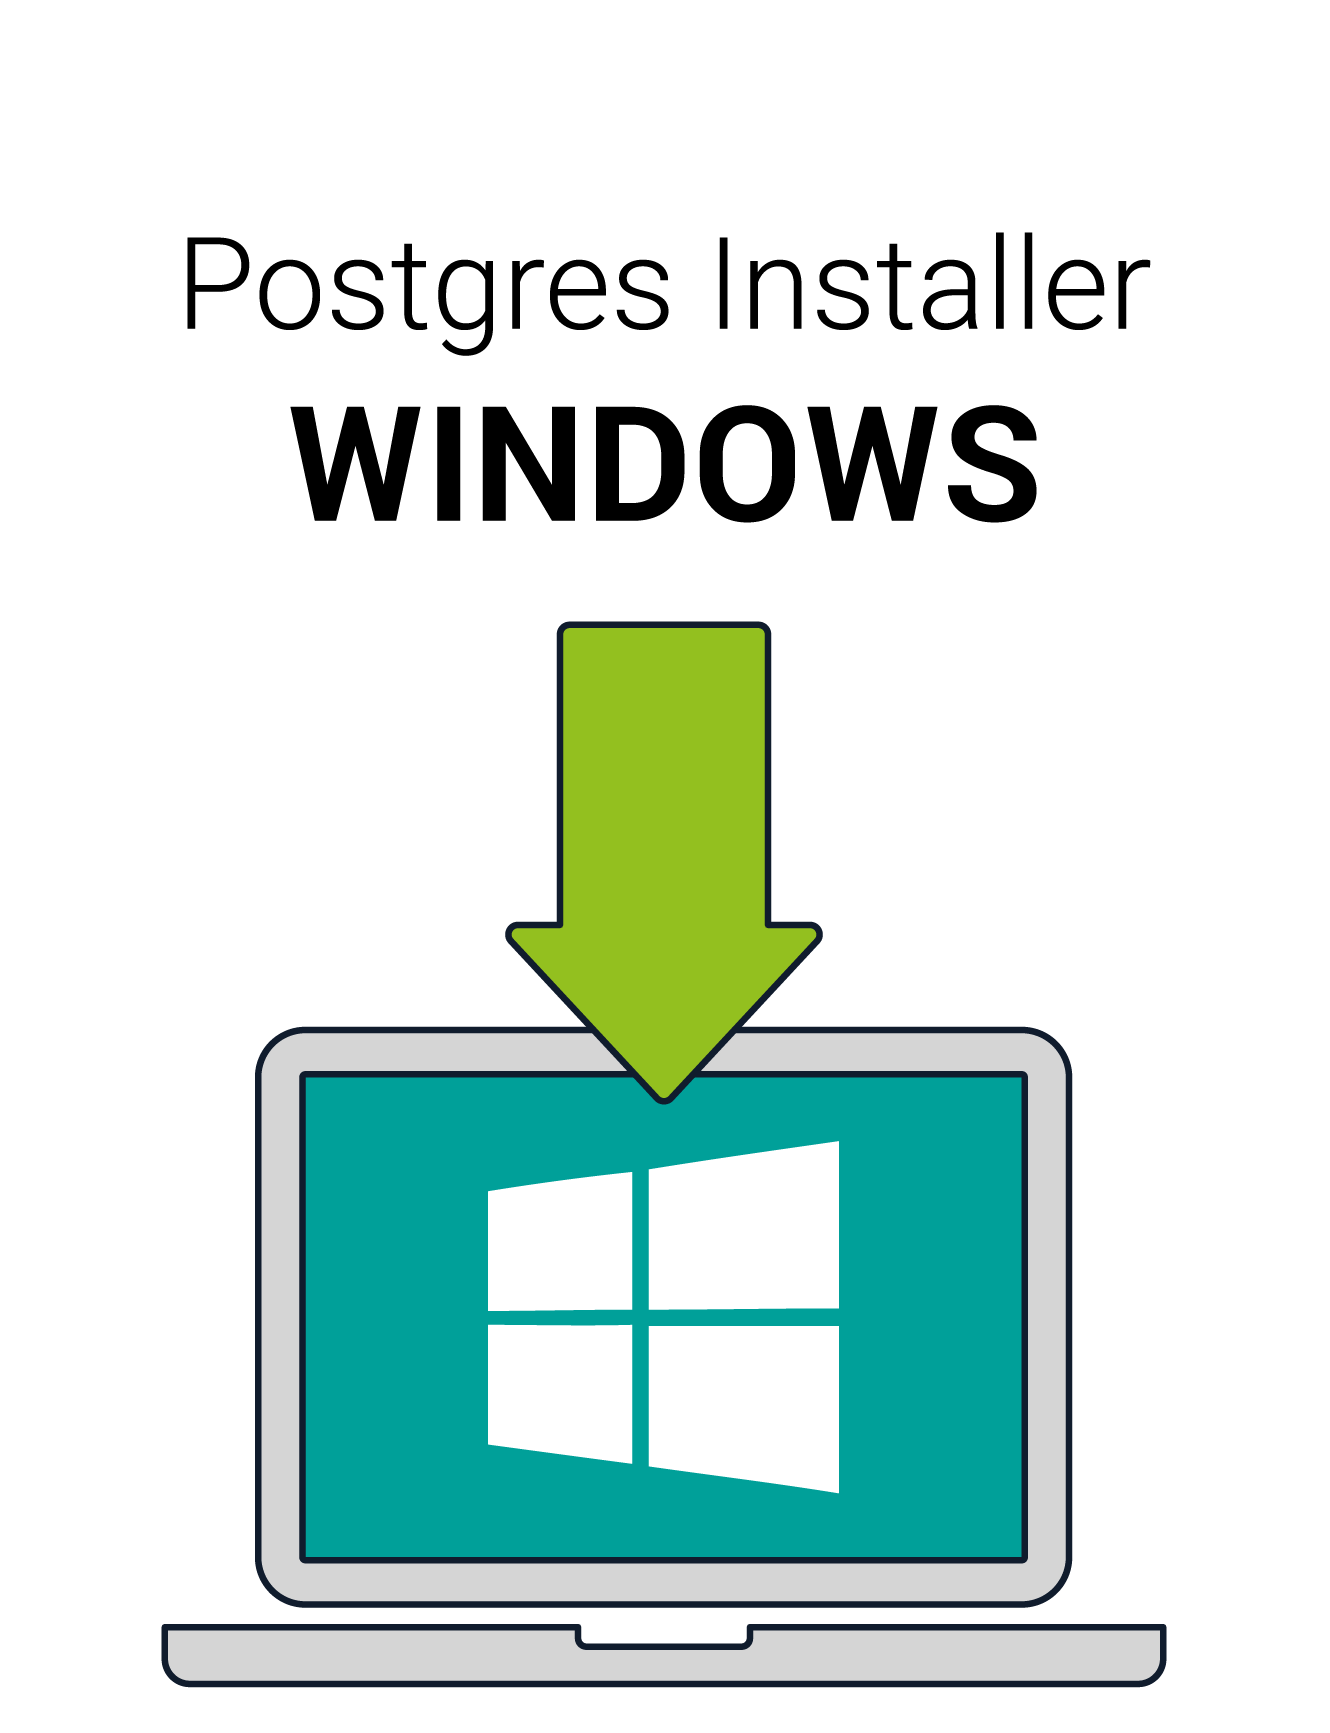 Postgres Installer is available to download for Windows with support for Windows 8 (32 bit and 64 bit) and Windows 10 (32 bit and 64 bit).